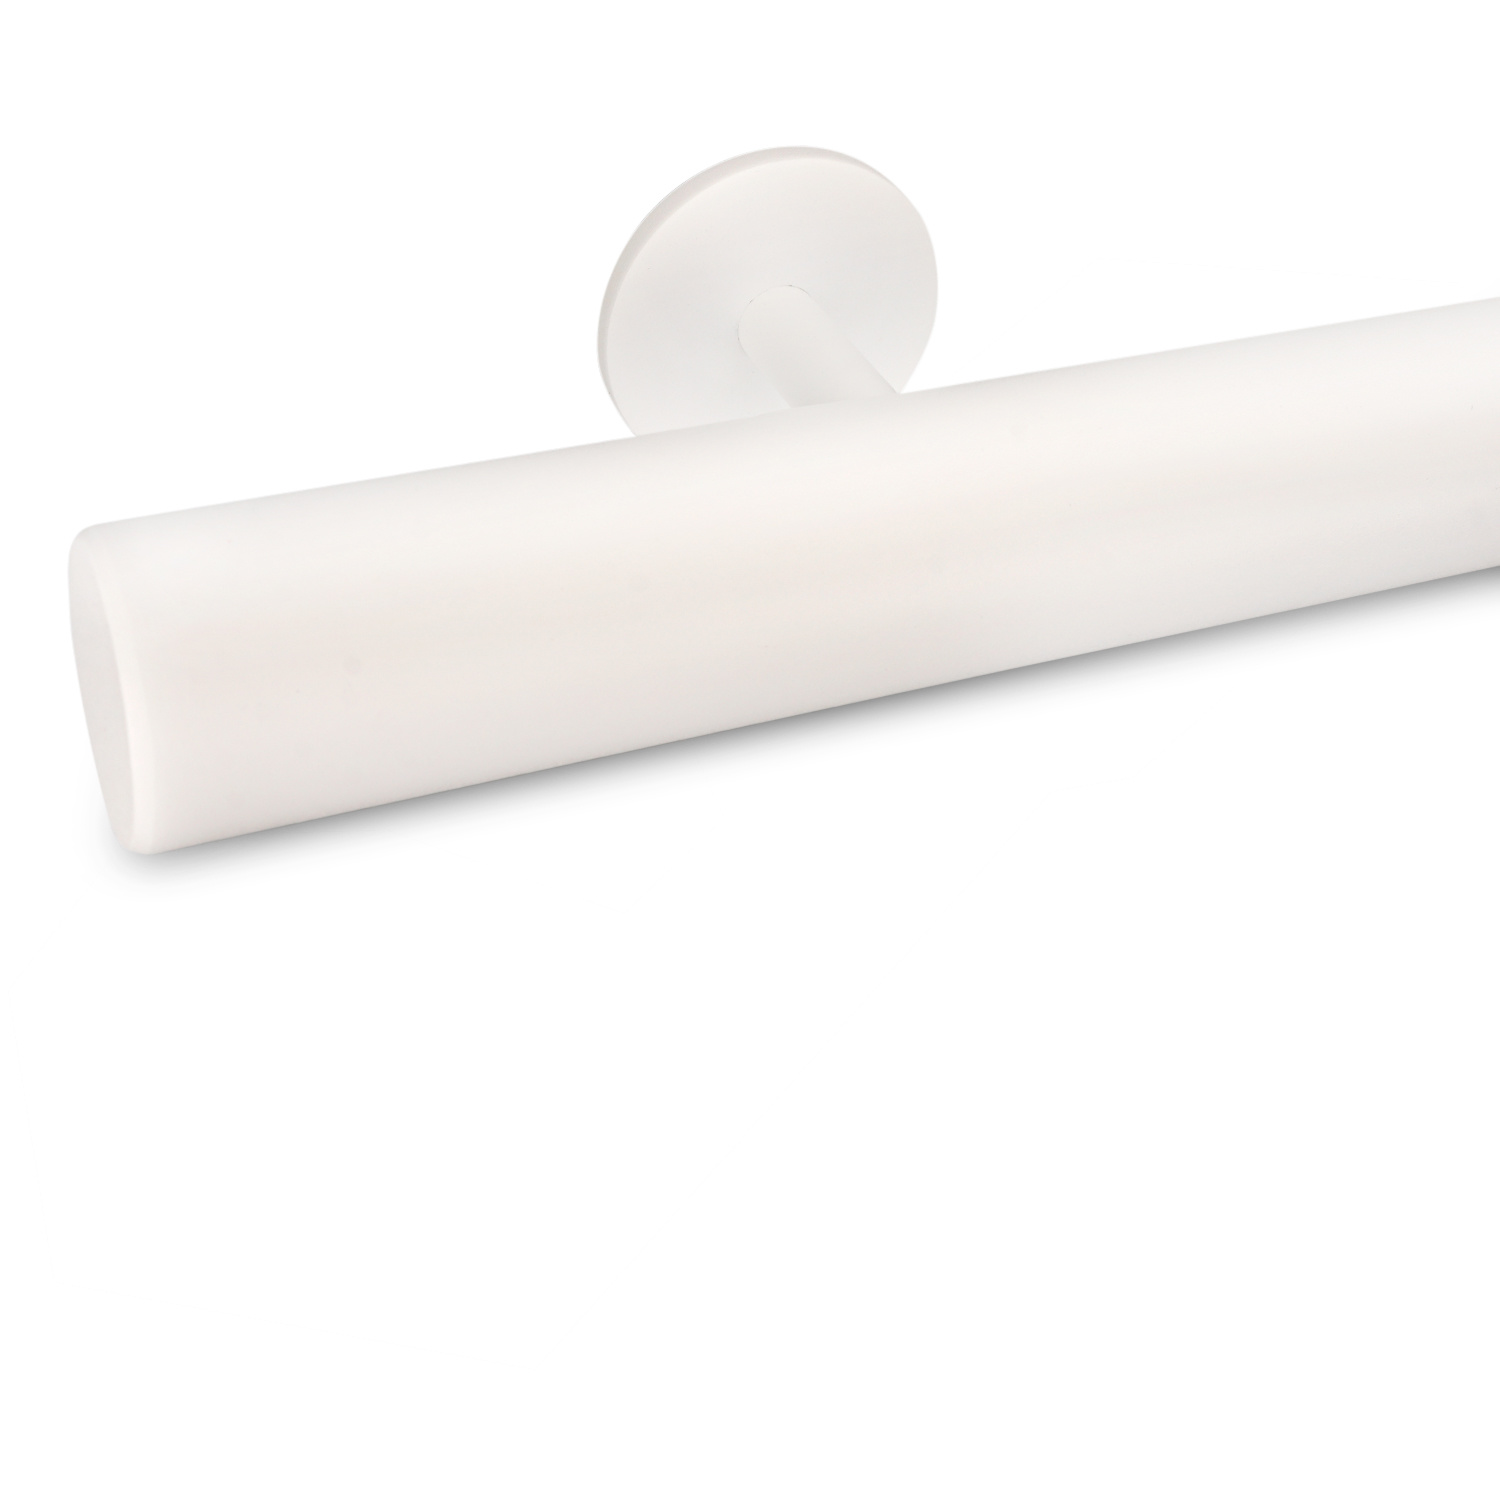 Trapleuning wit gecoat rond incl. dragers TYPE 5 - witte poedercoating RAL 9010